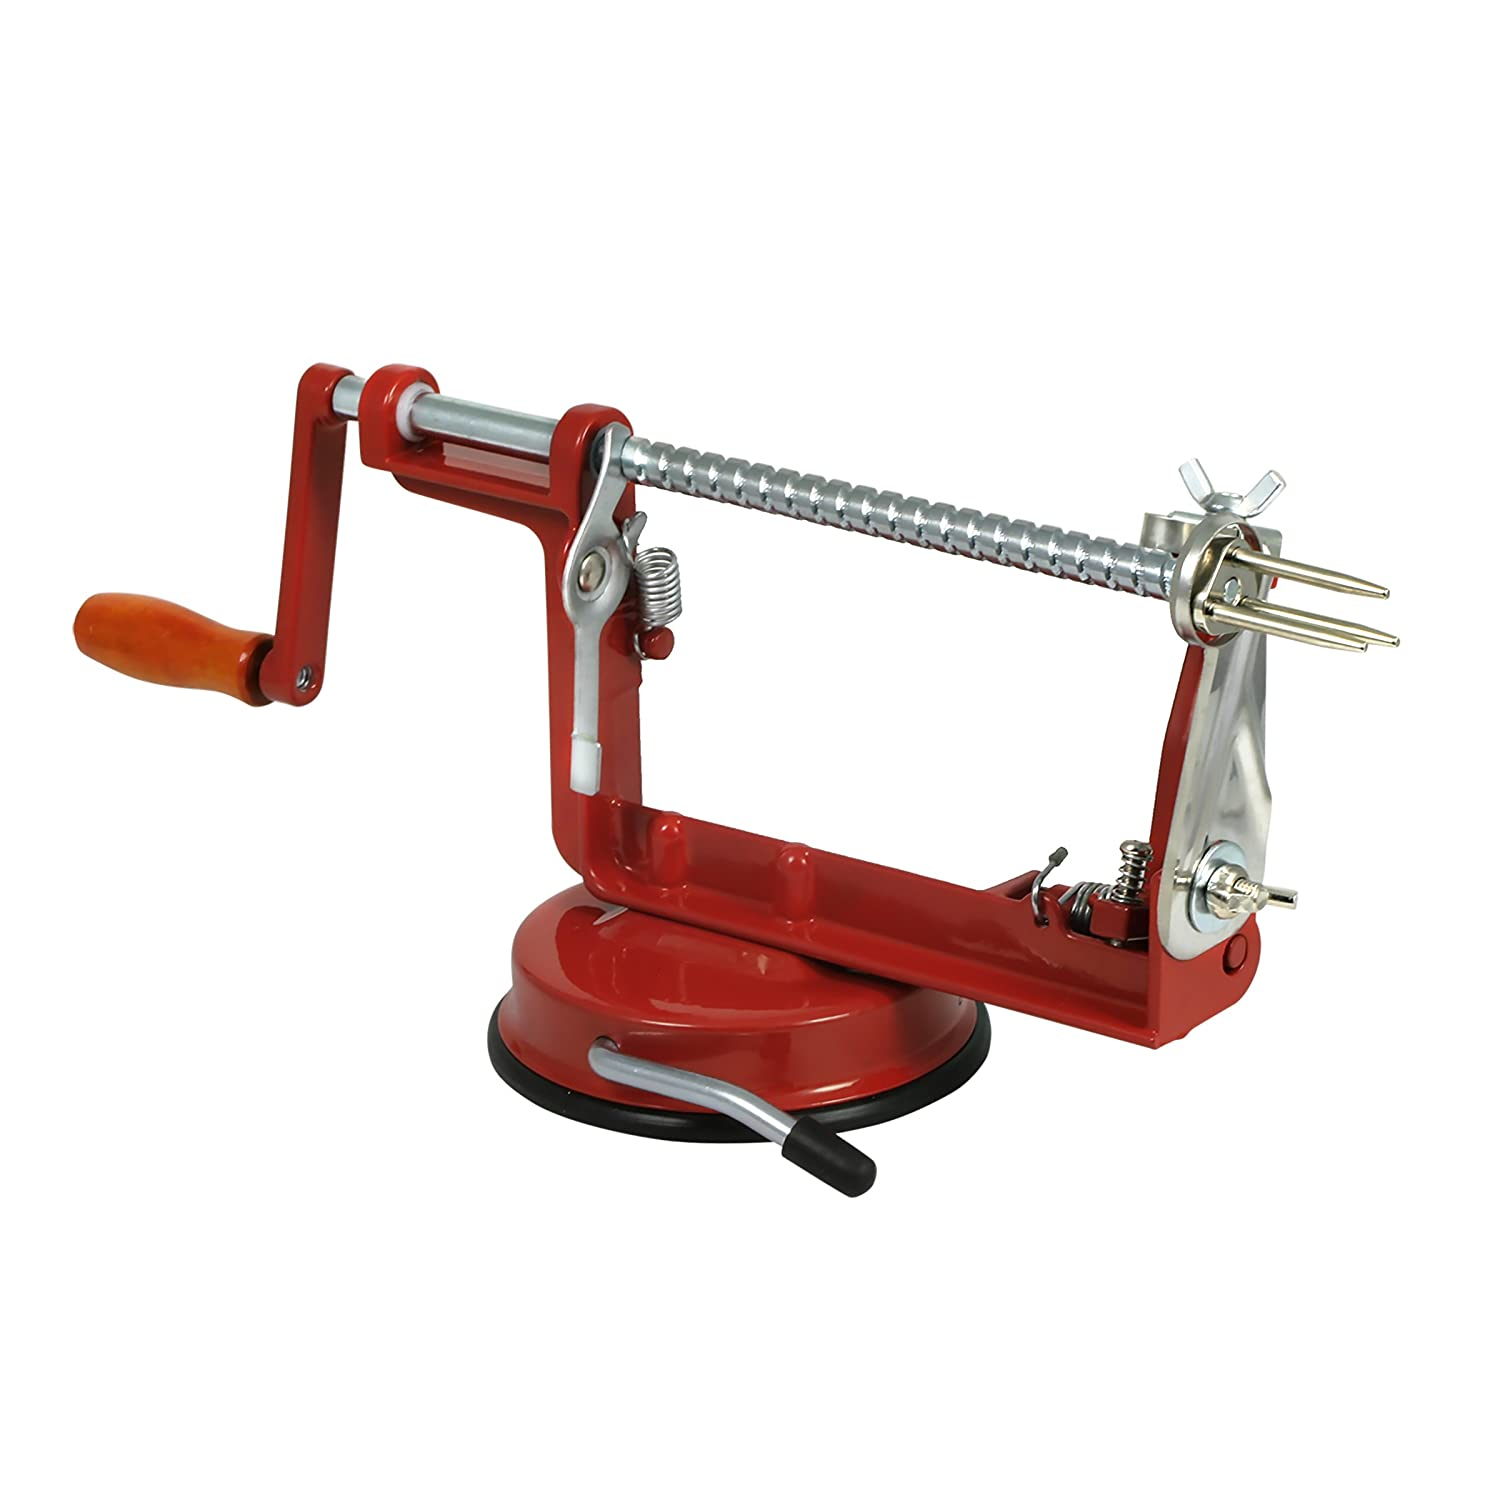 Farberware 5162120 Apple Peeler, Slicer and Corer, Small, Red